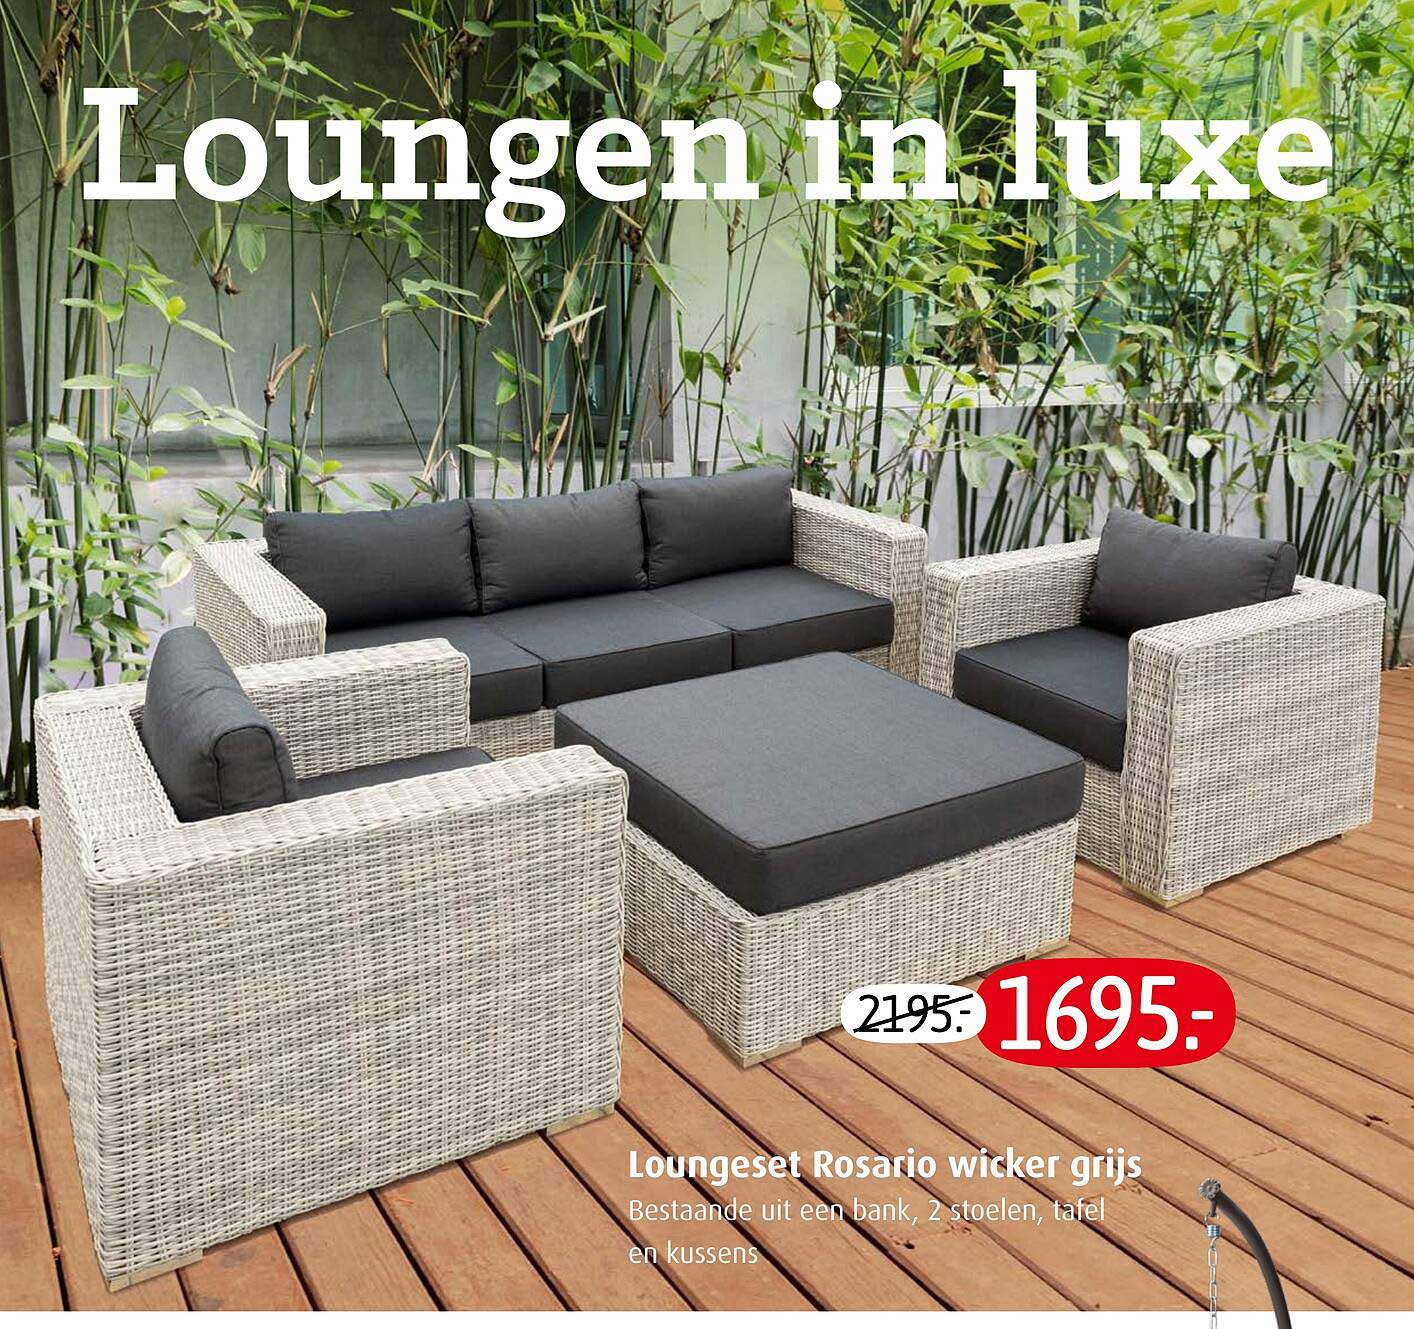 Tuincentrum Overvecht Loungeset Rosario Wicker Grijs